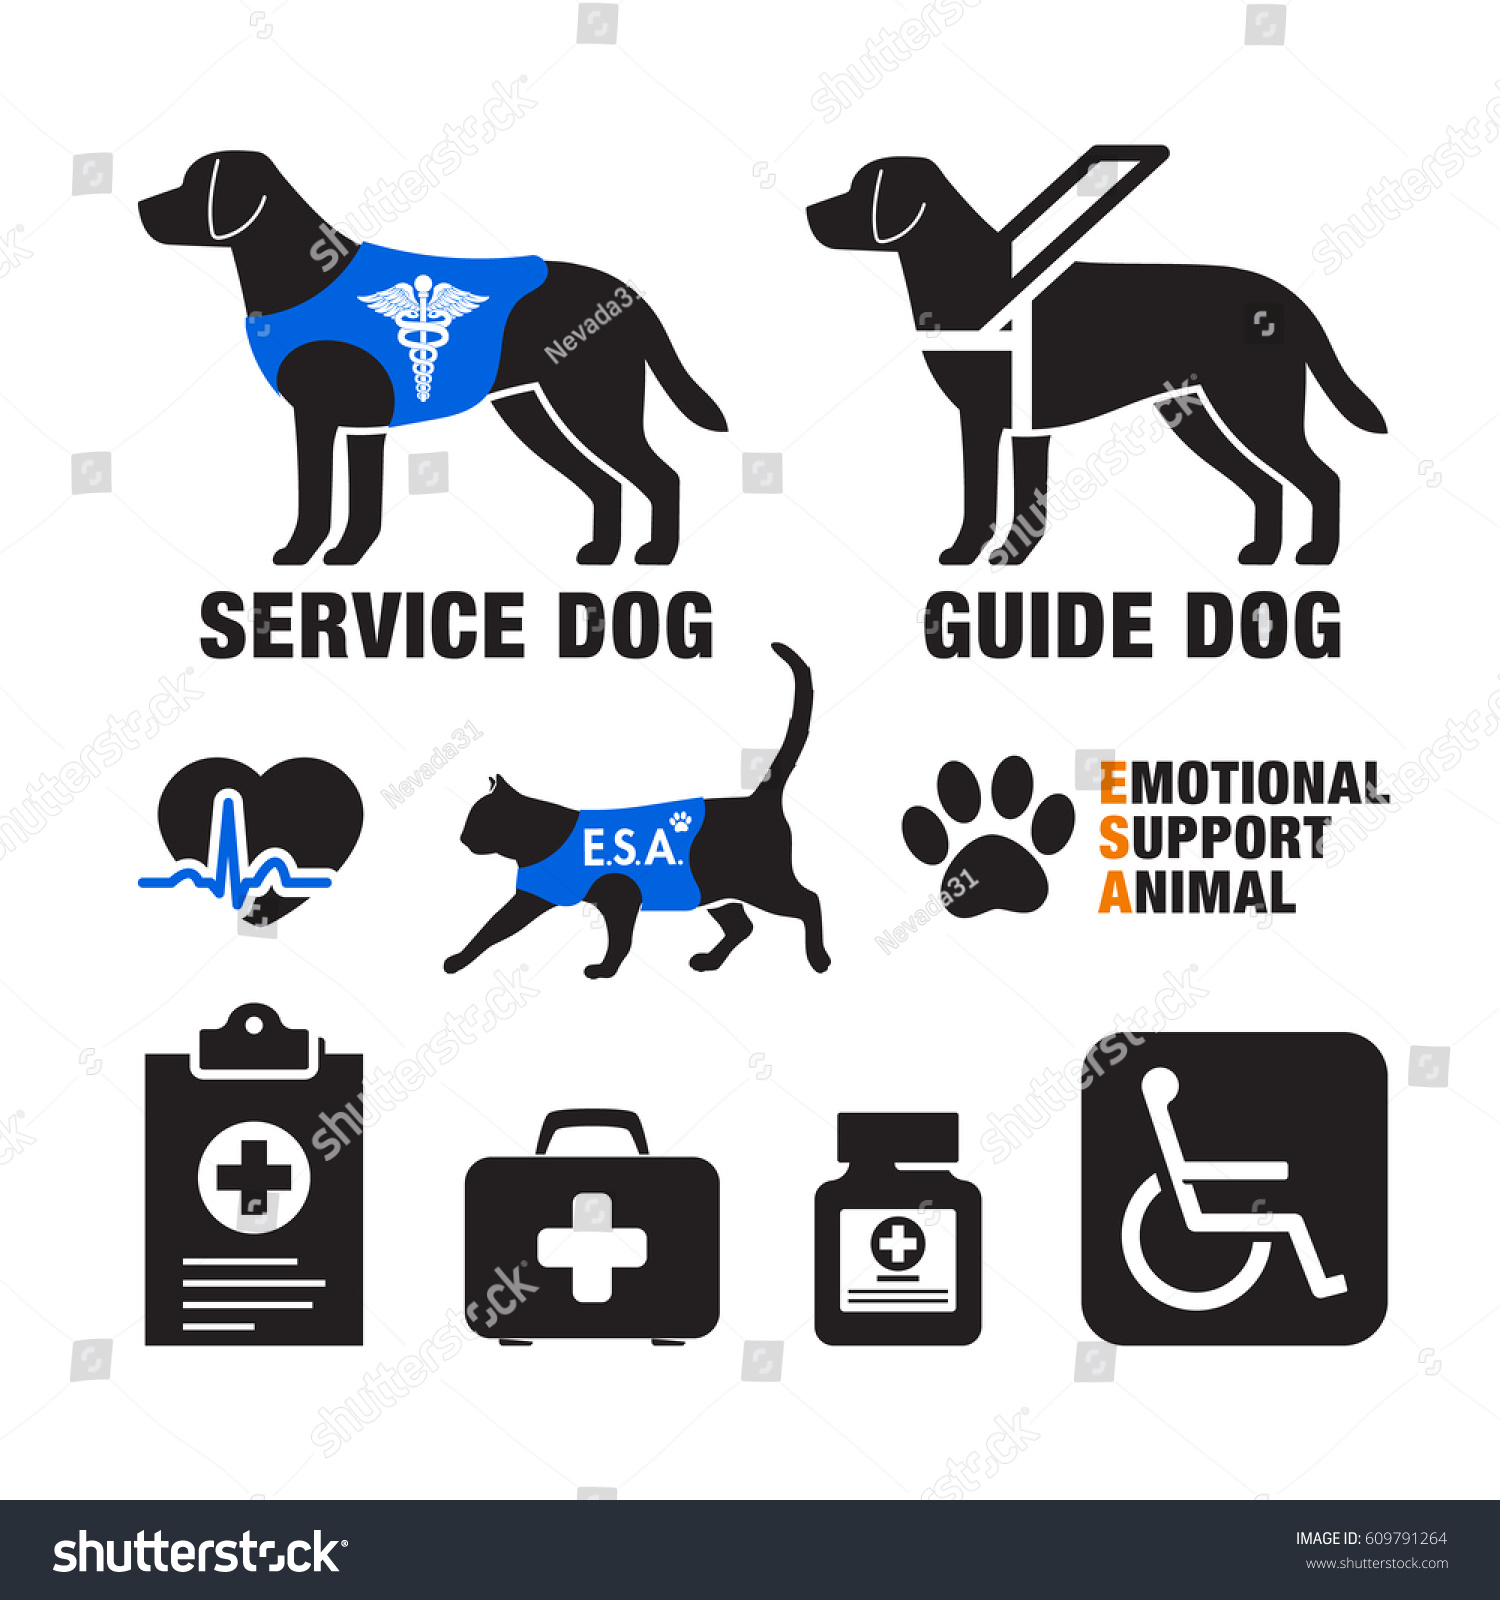 Offical Site For Service Dog